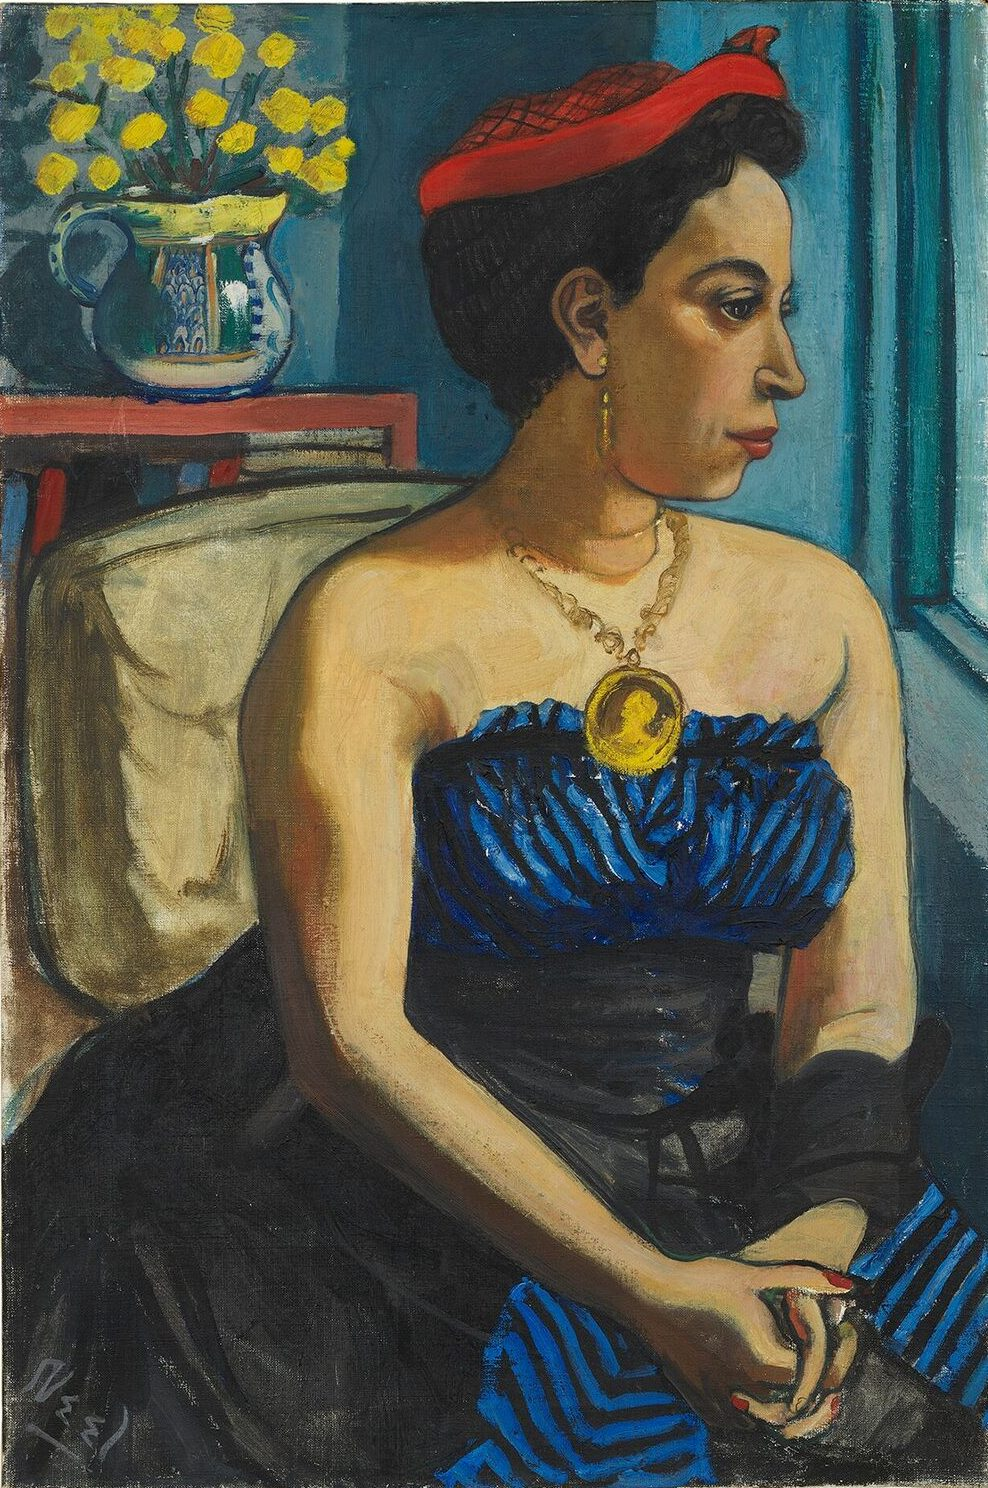 'Alice Childress' Alice Neel Oil on canvas, 75.9 x 50.8 cm, 1950 (Exhibited at Alice Neel 'Uptown', Victoria Miro Gallery, London - https://www.victoria-miro.com/exhibitions/506/)